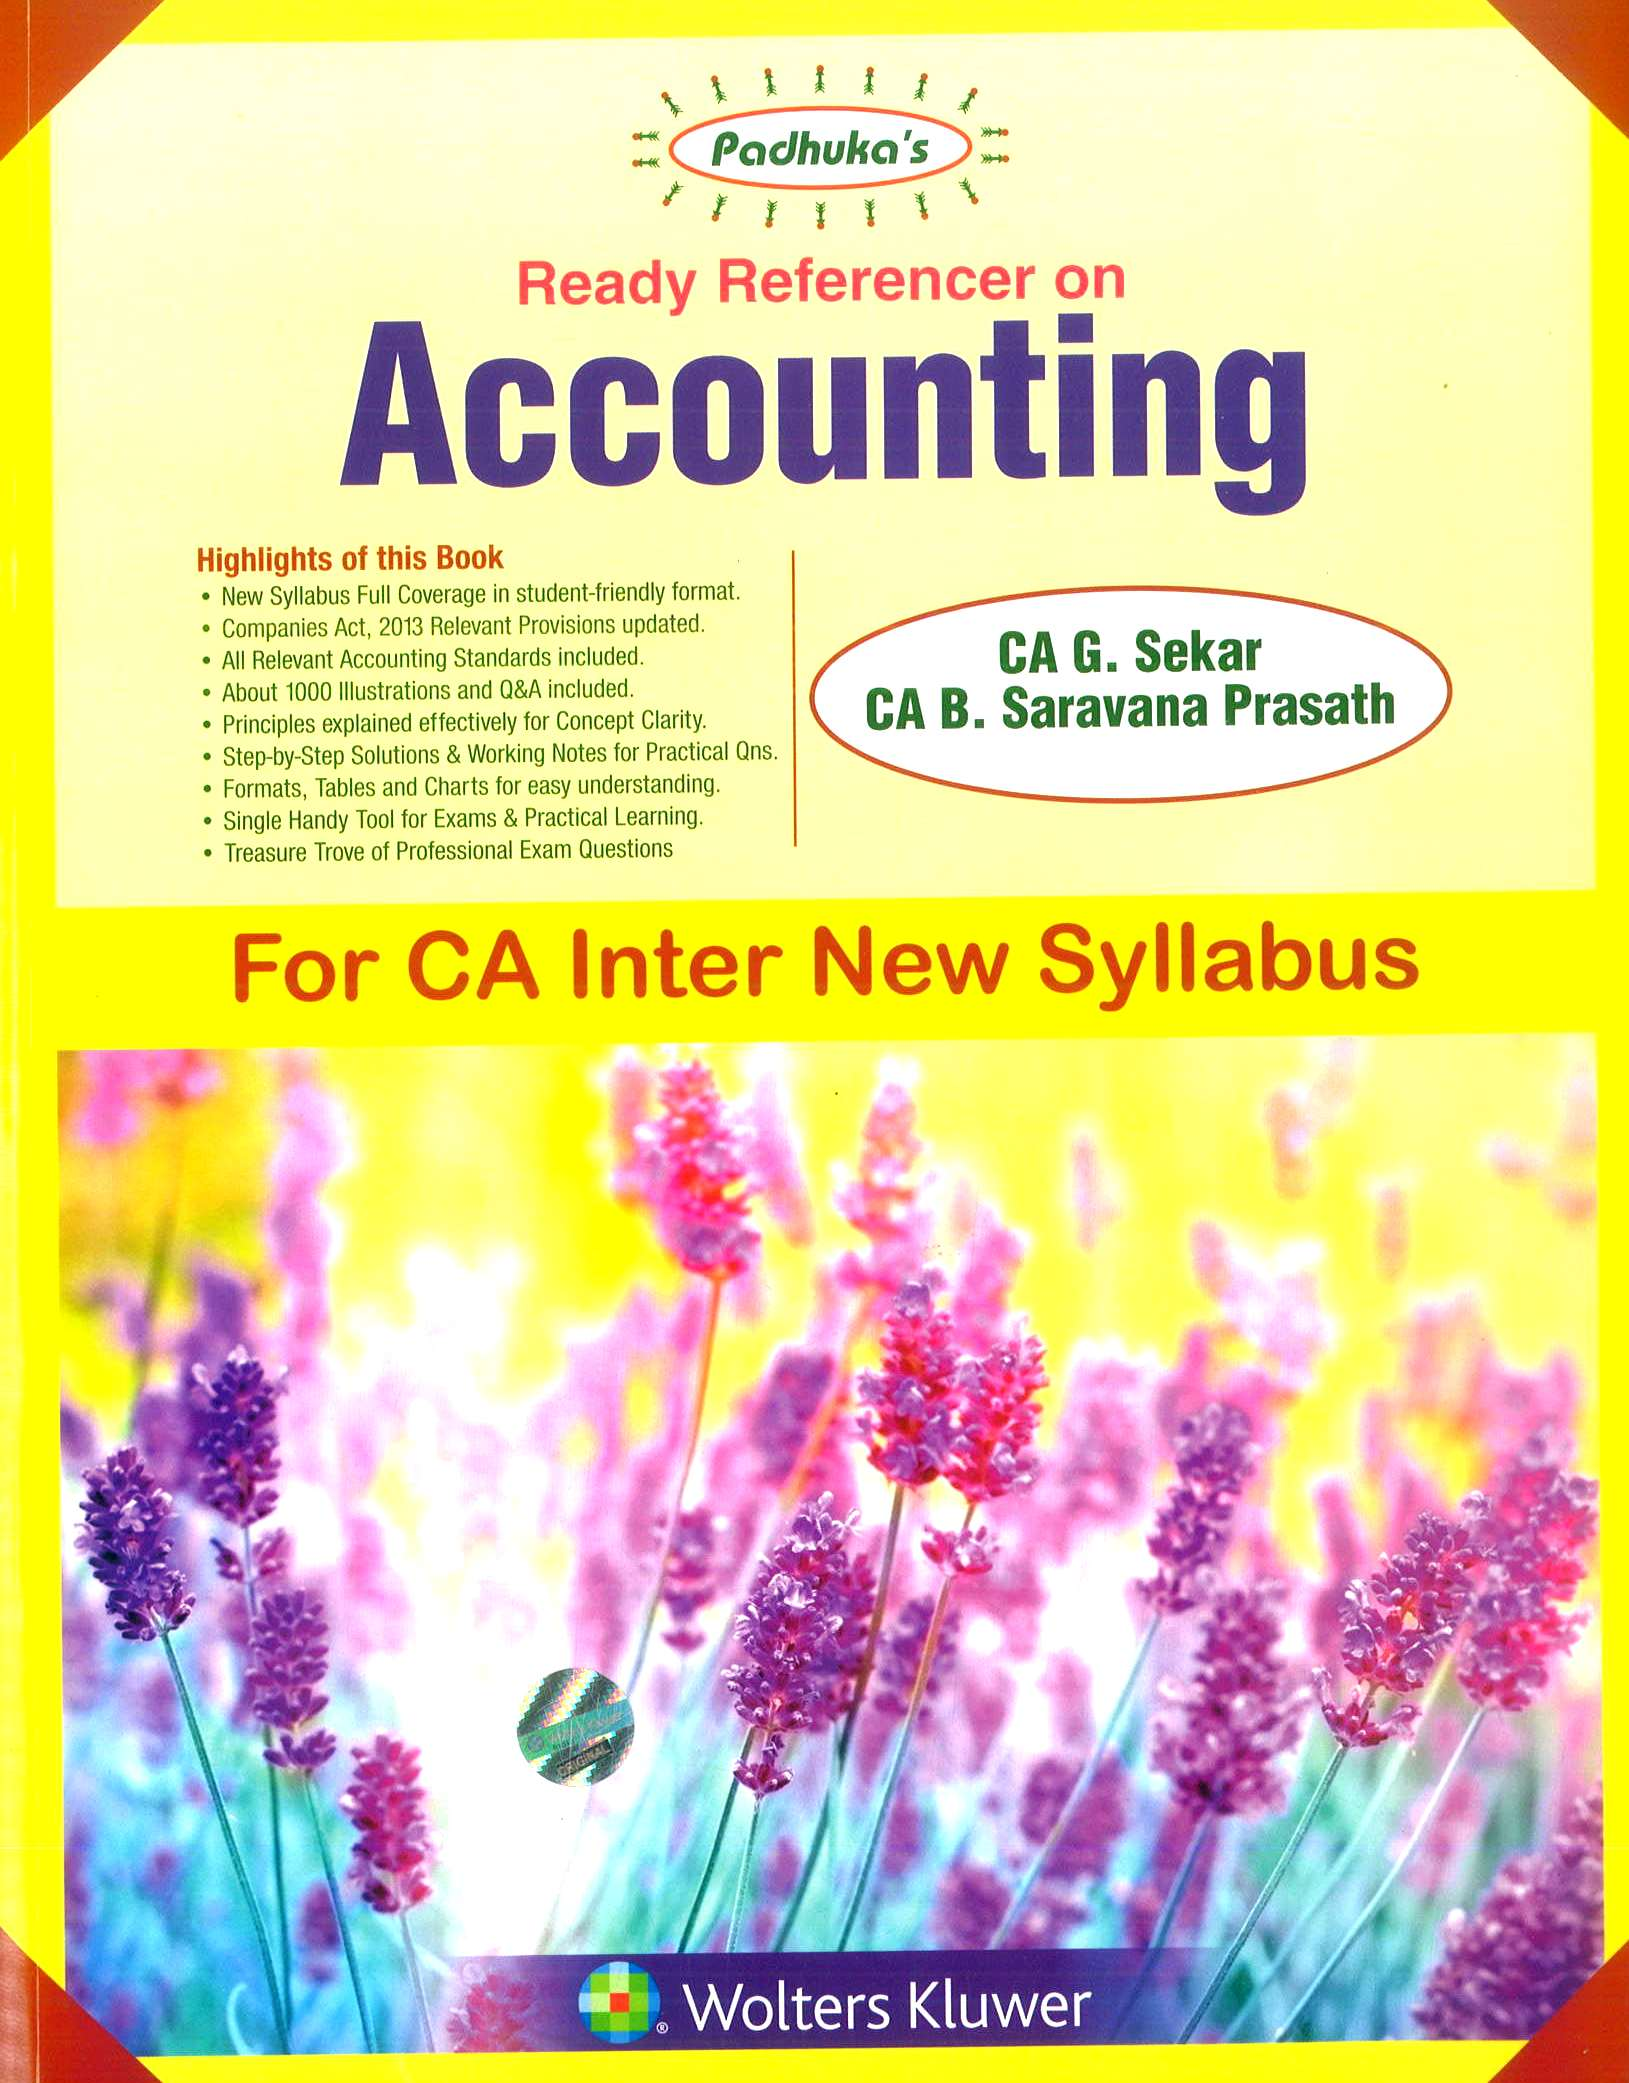 CCH Paduka's Ready Reference on Accounting for CA Inter new syllabus (IPC) -Group I  by CA G. Sekar and CA B. Saravana Prasath (Wolters Kluwer Publishing) Edition Dec 2018 for May 2019 Exam